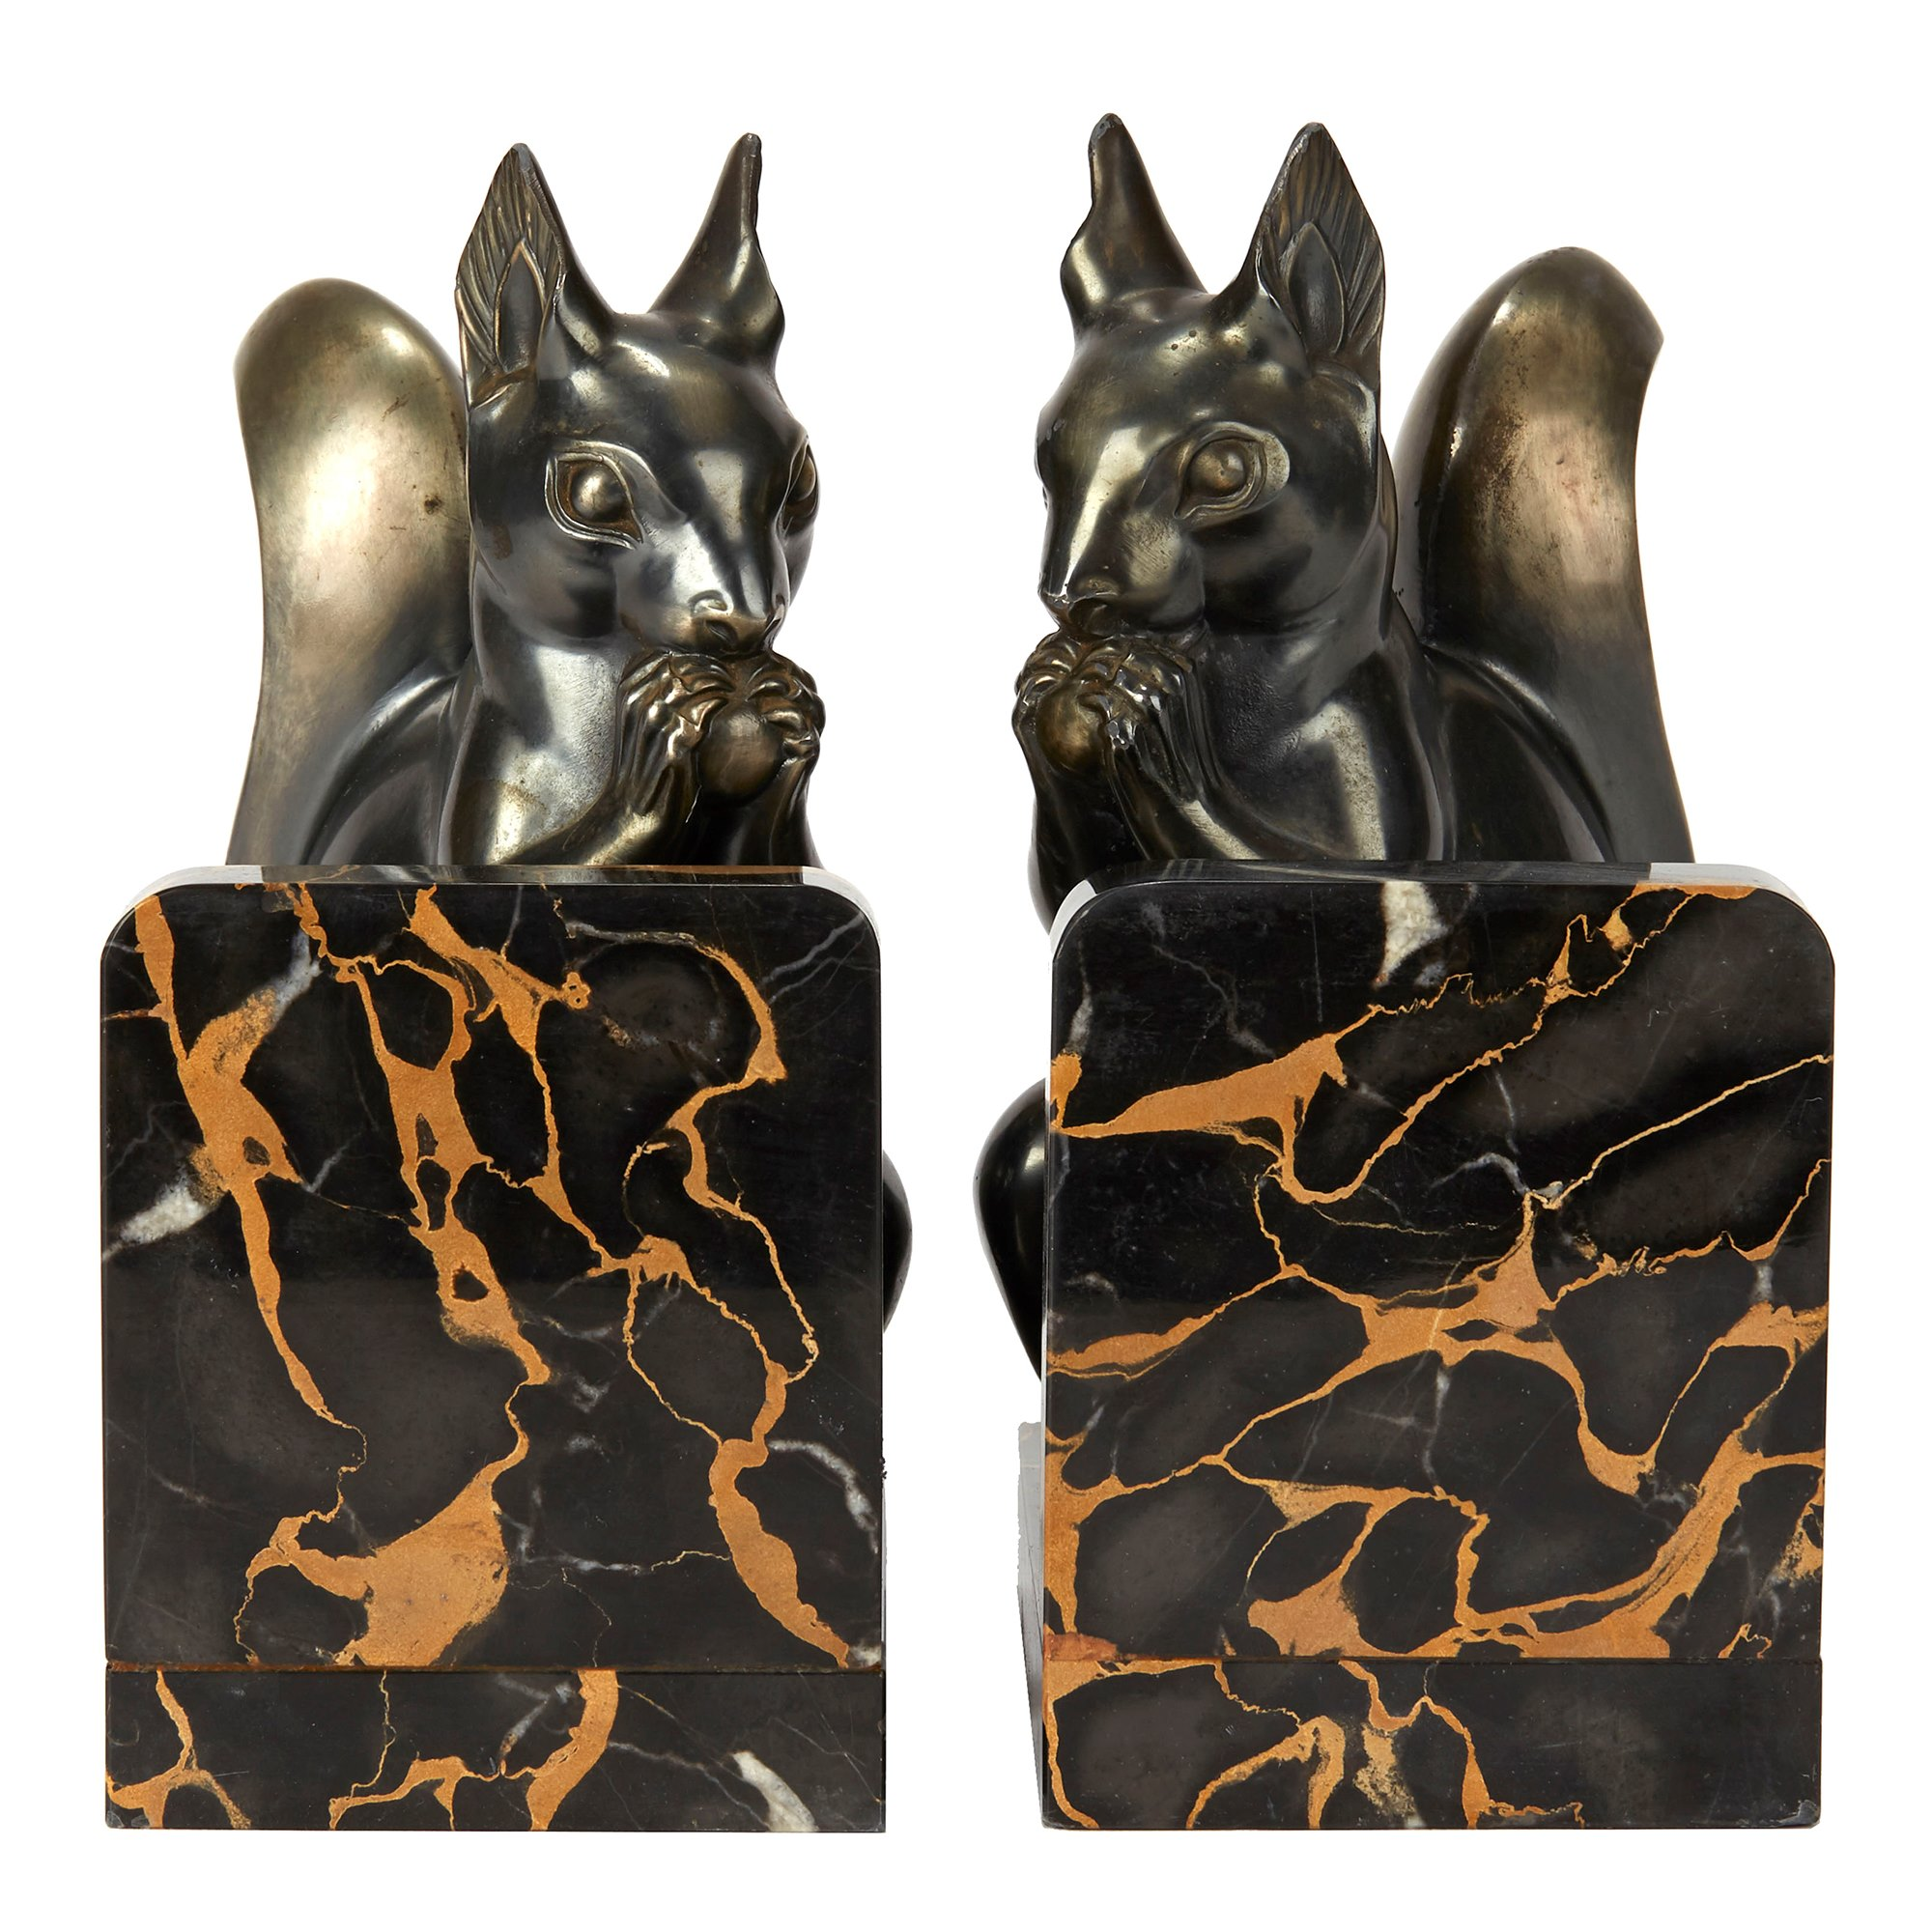 PAIR ART DECO SQUIRREL MOUNTED BOOKENDS BY MAURICE FONT Circa 1920-40